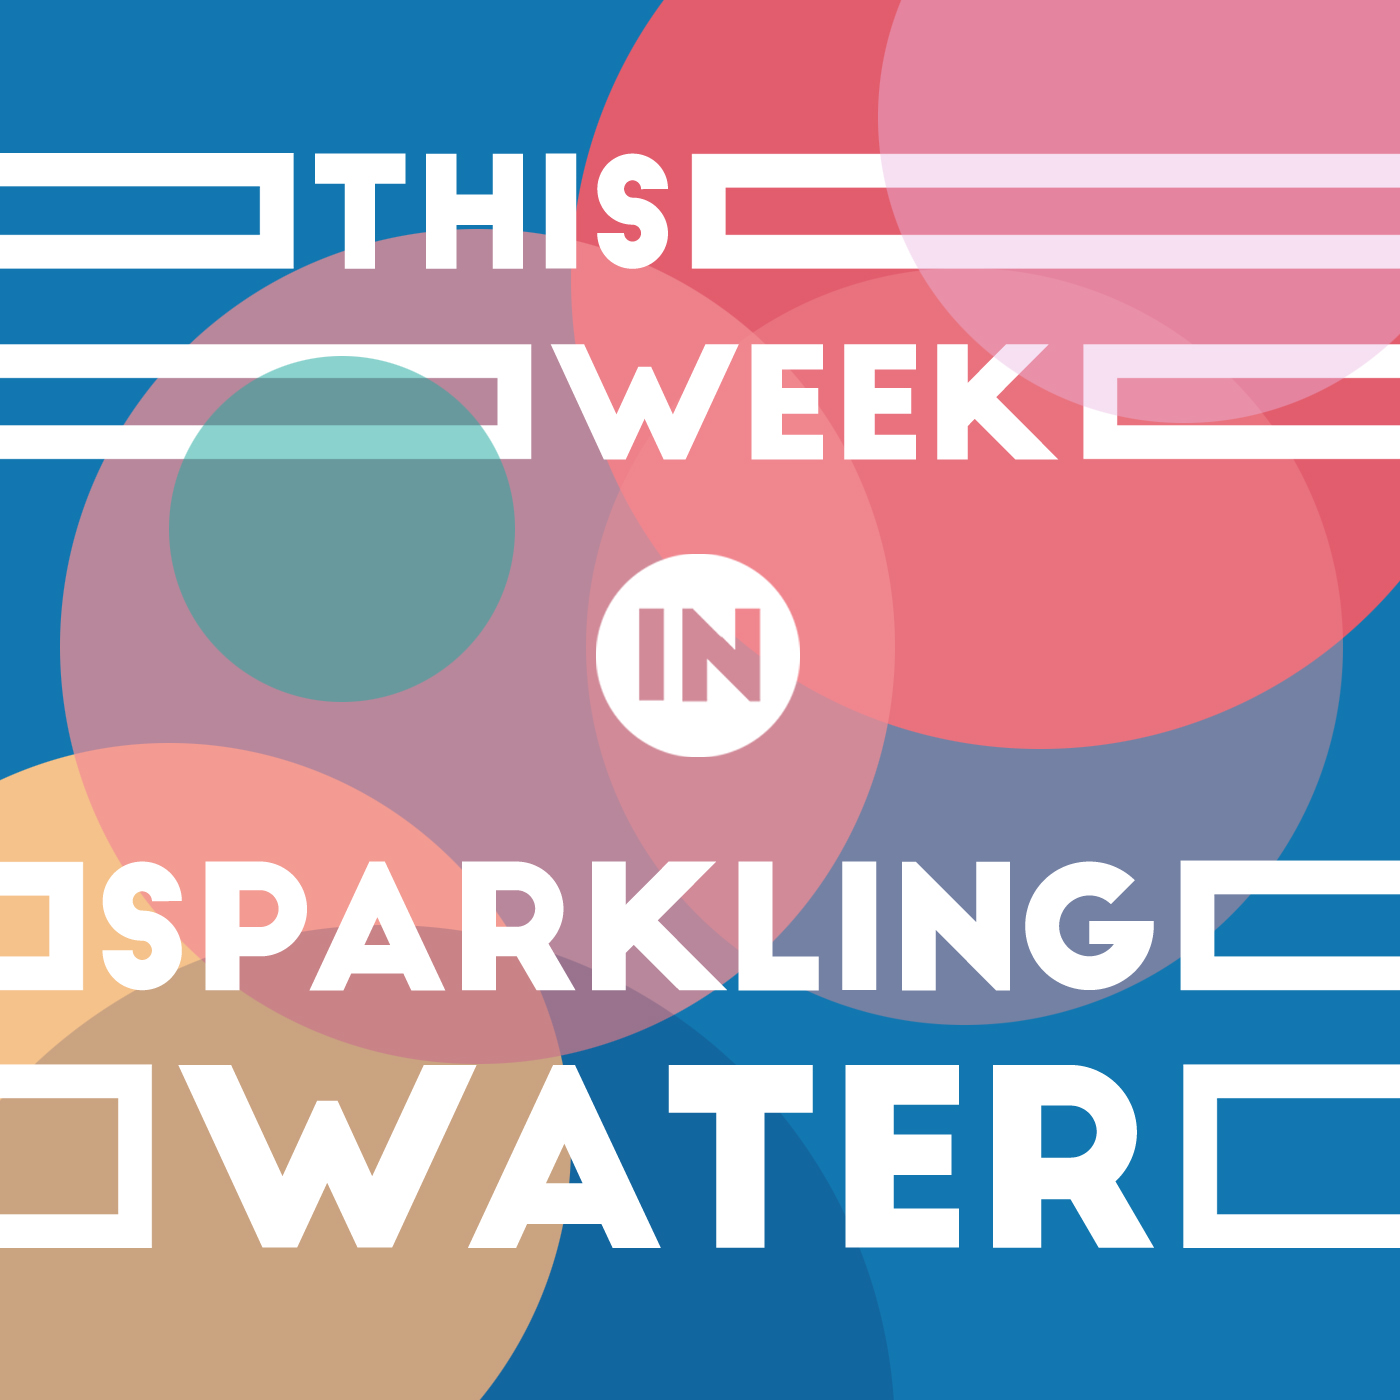 This Week in Sparkling Water